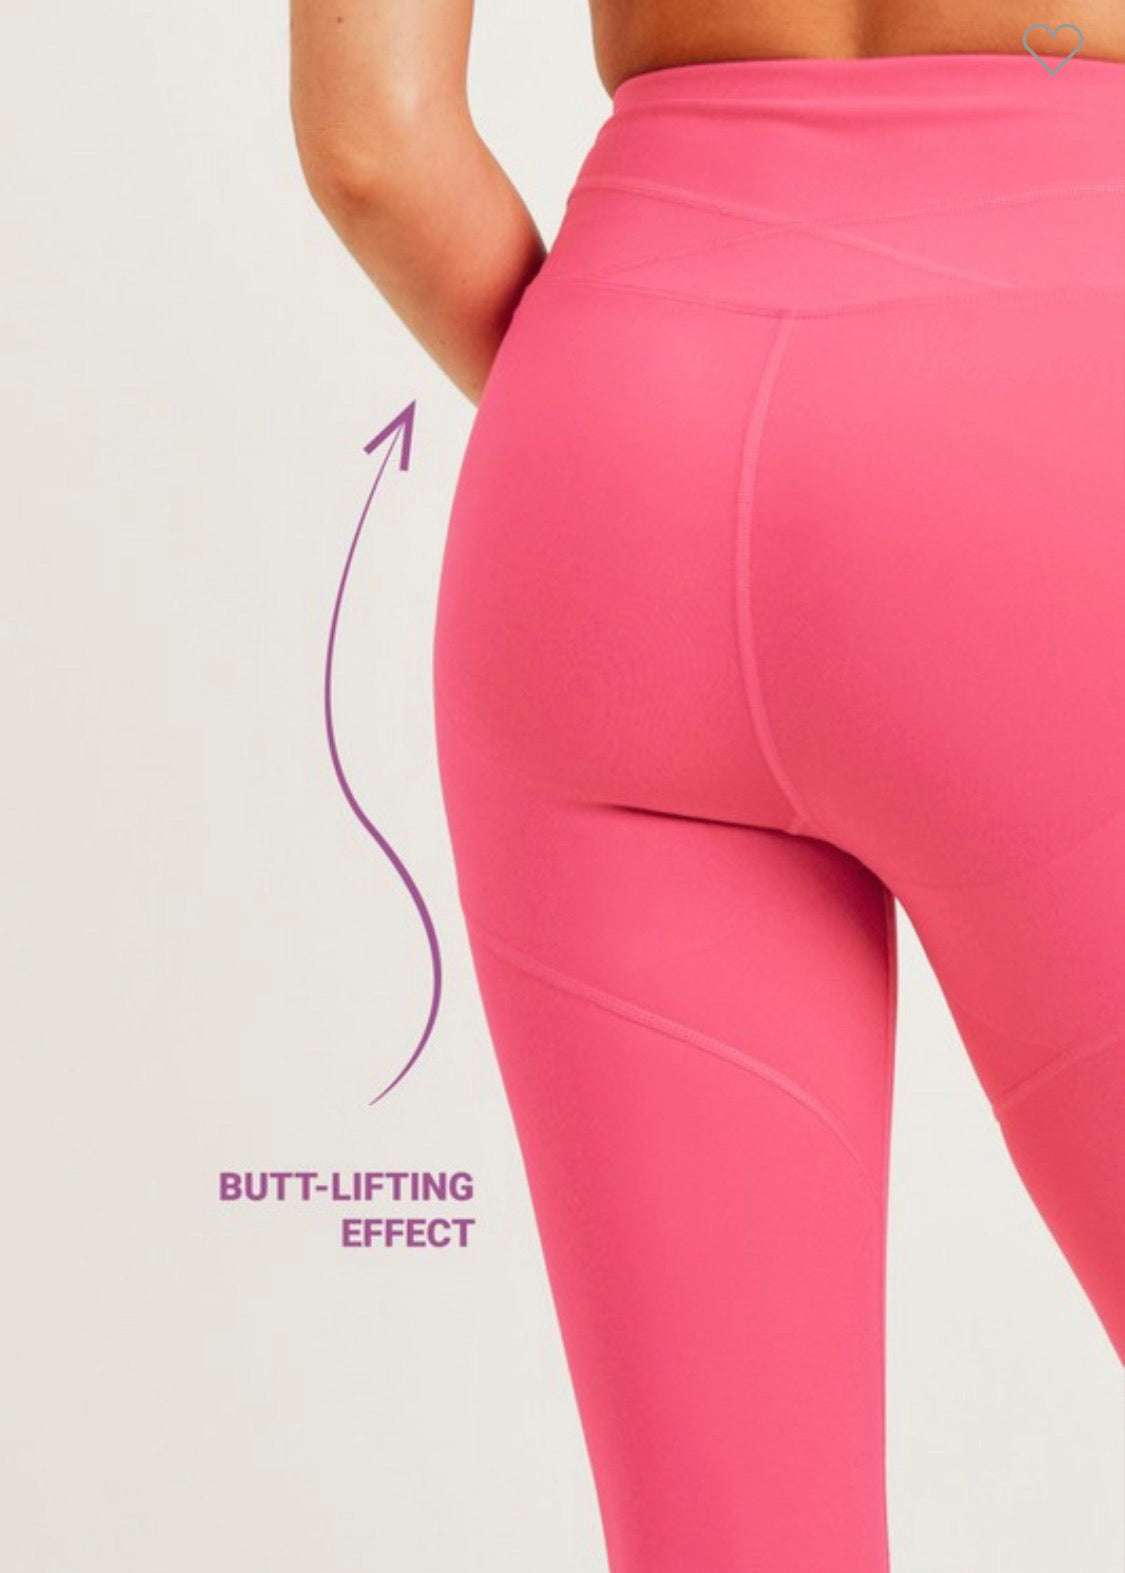 Booty Lifting Leggings